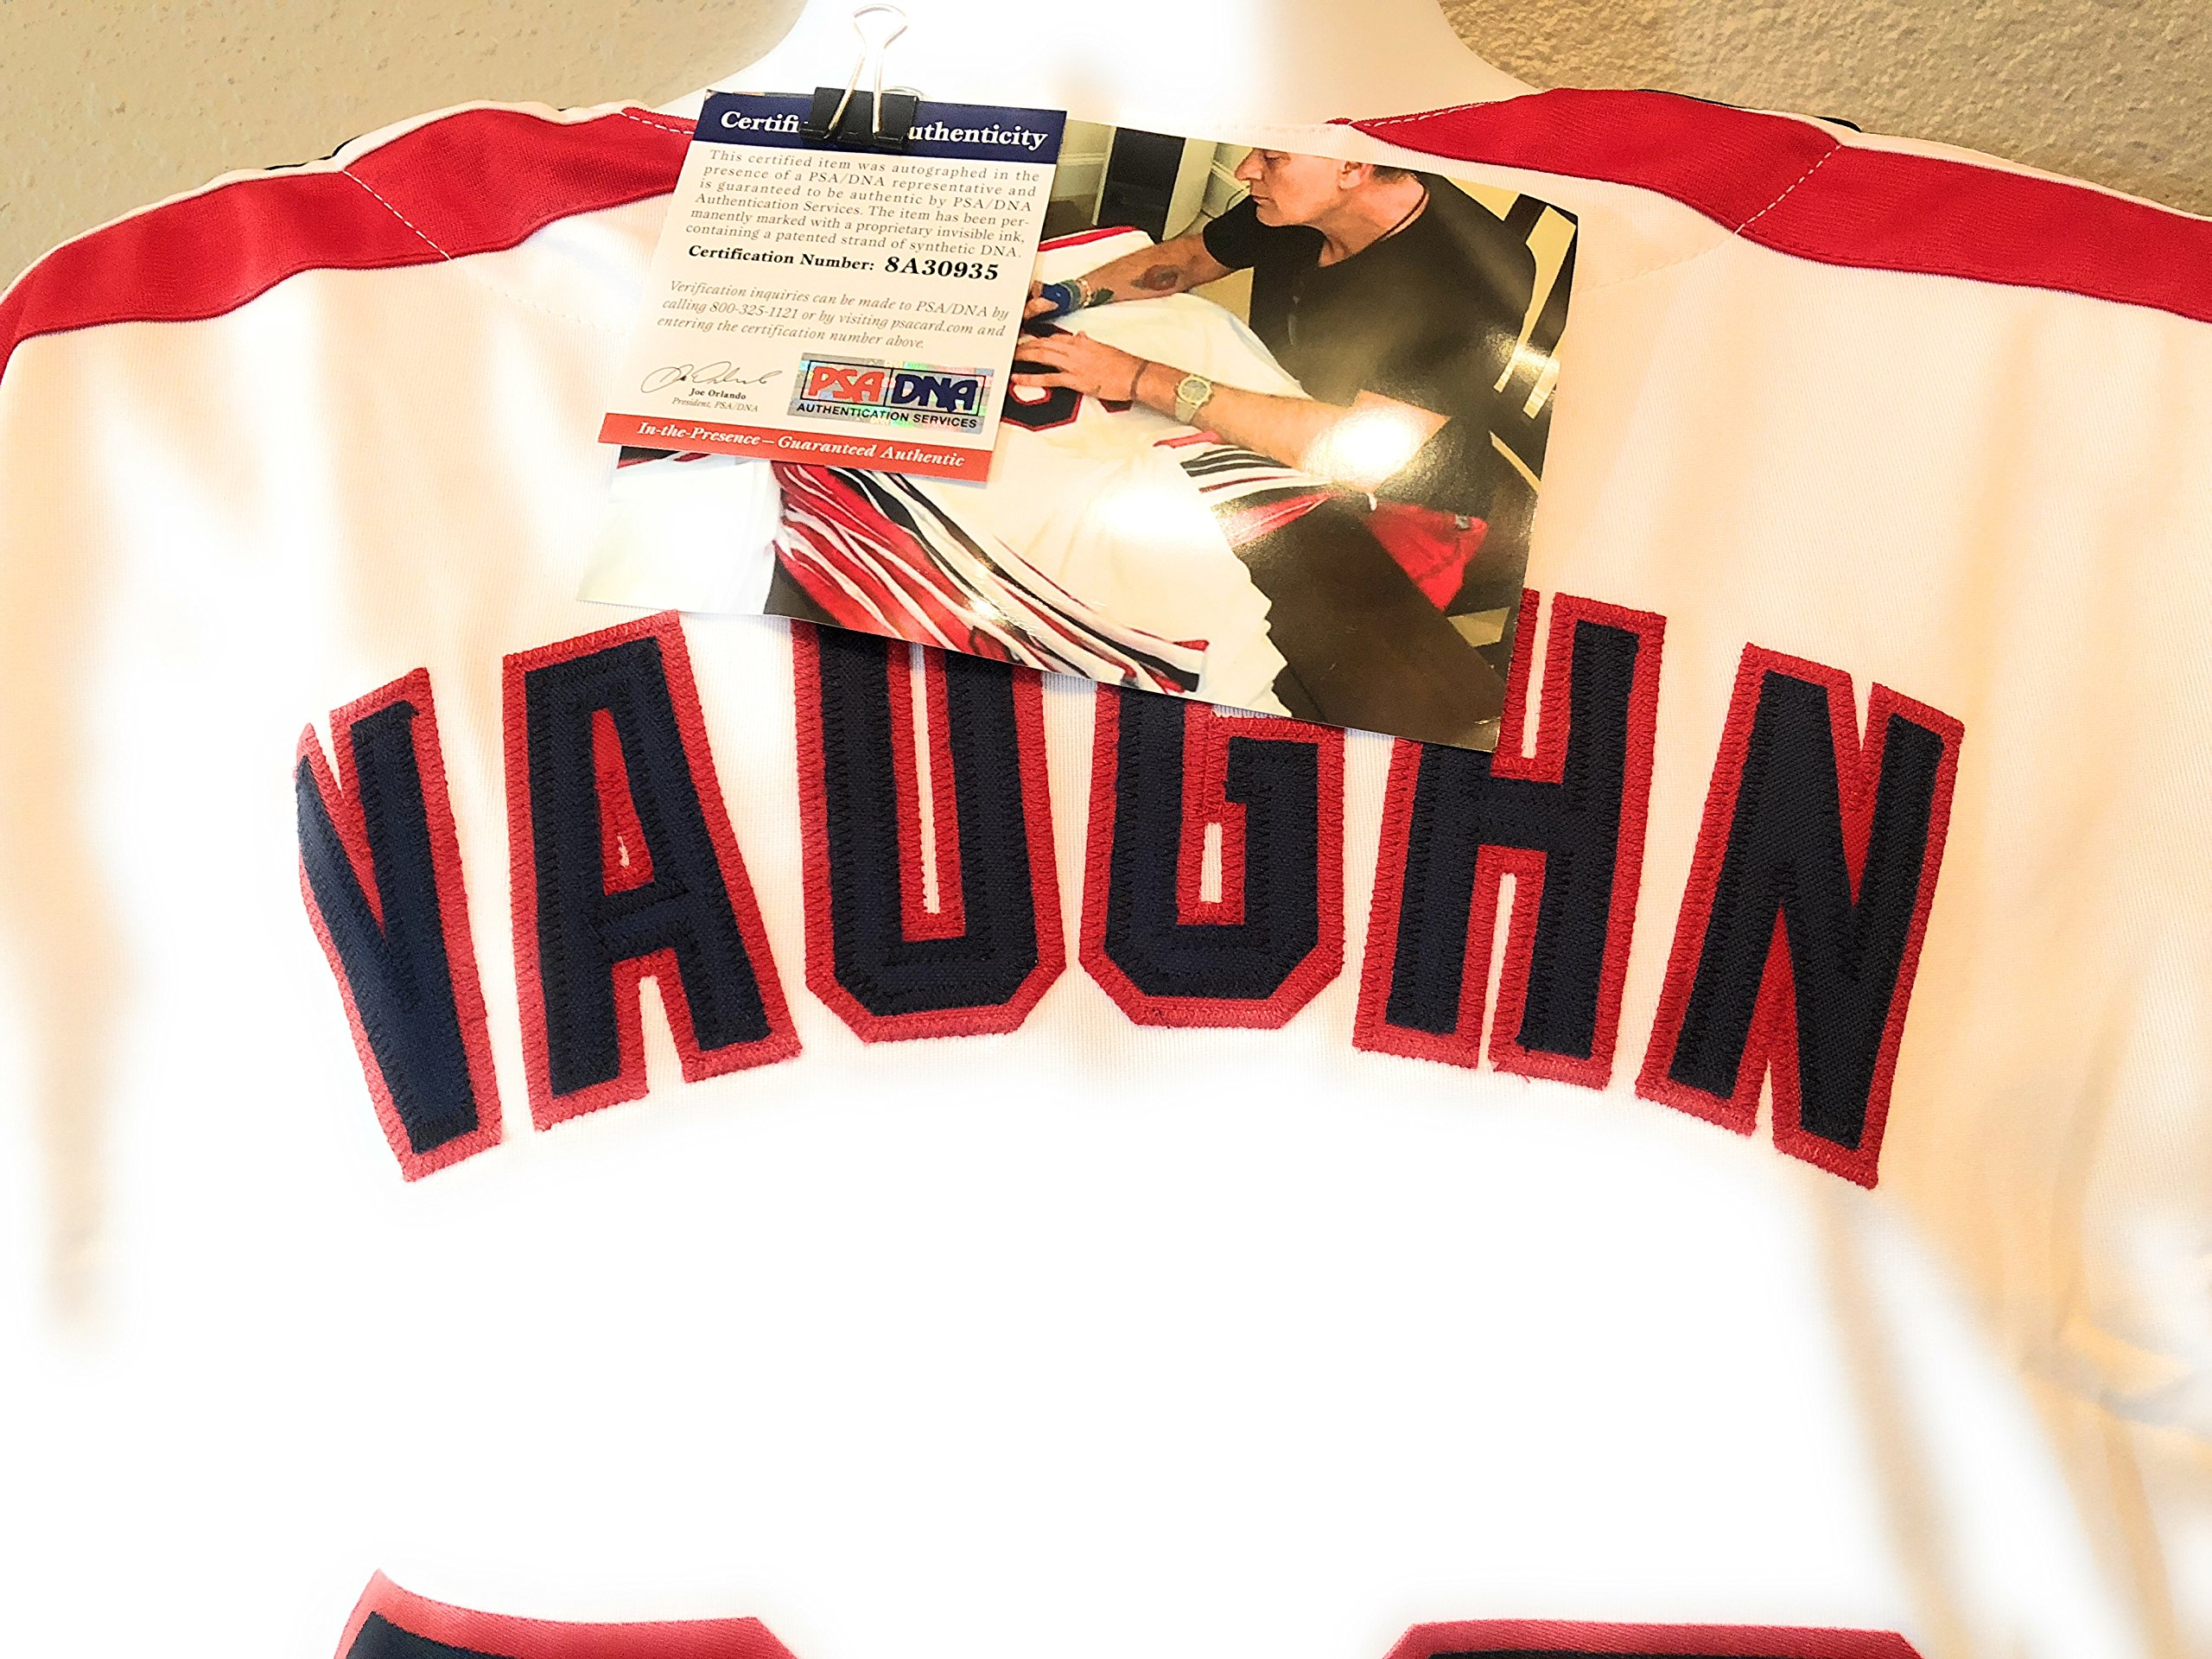 Charlee Sheen Ricky Vaughn Cleveland Indians Signed Autograph Major League The Movie Jersey PSA/DNA Witnessed Certified